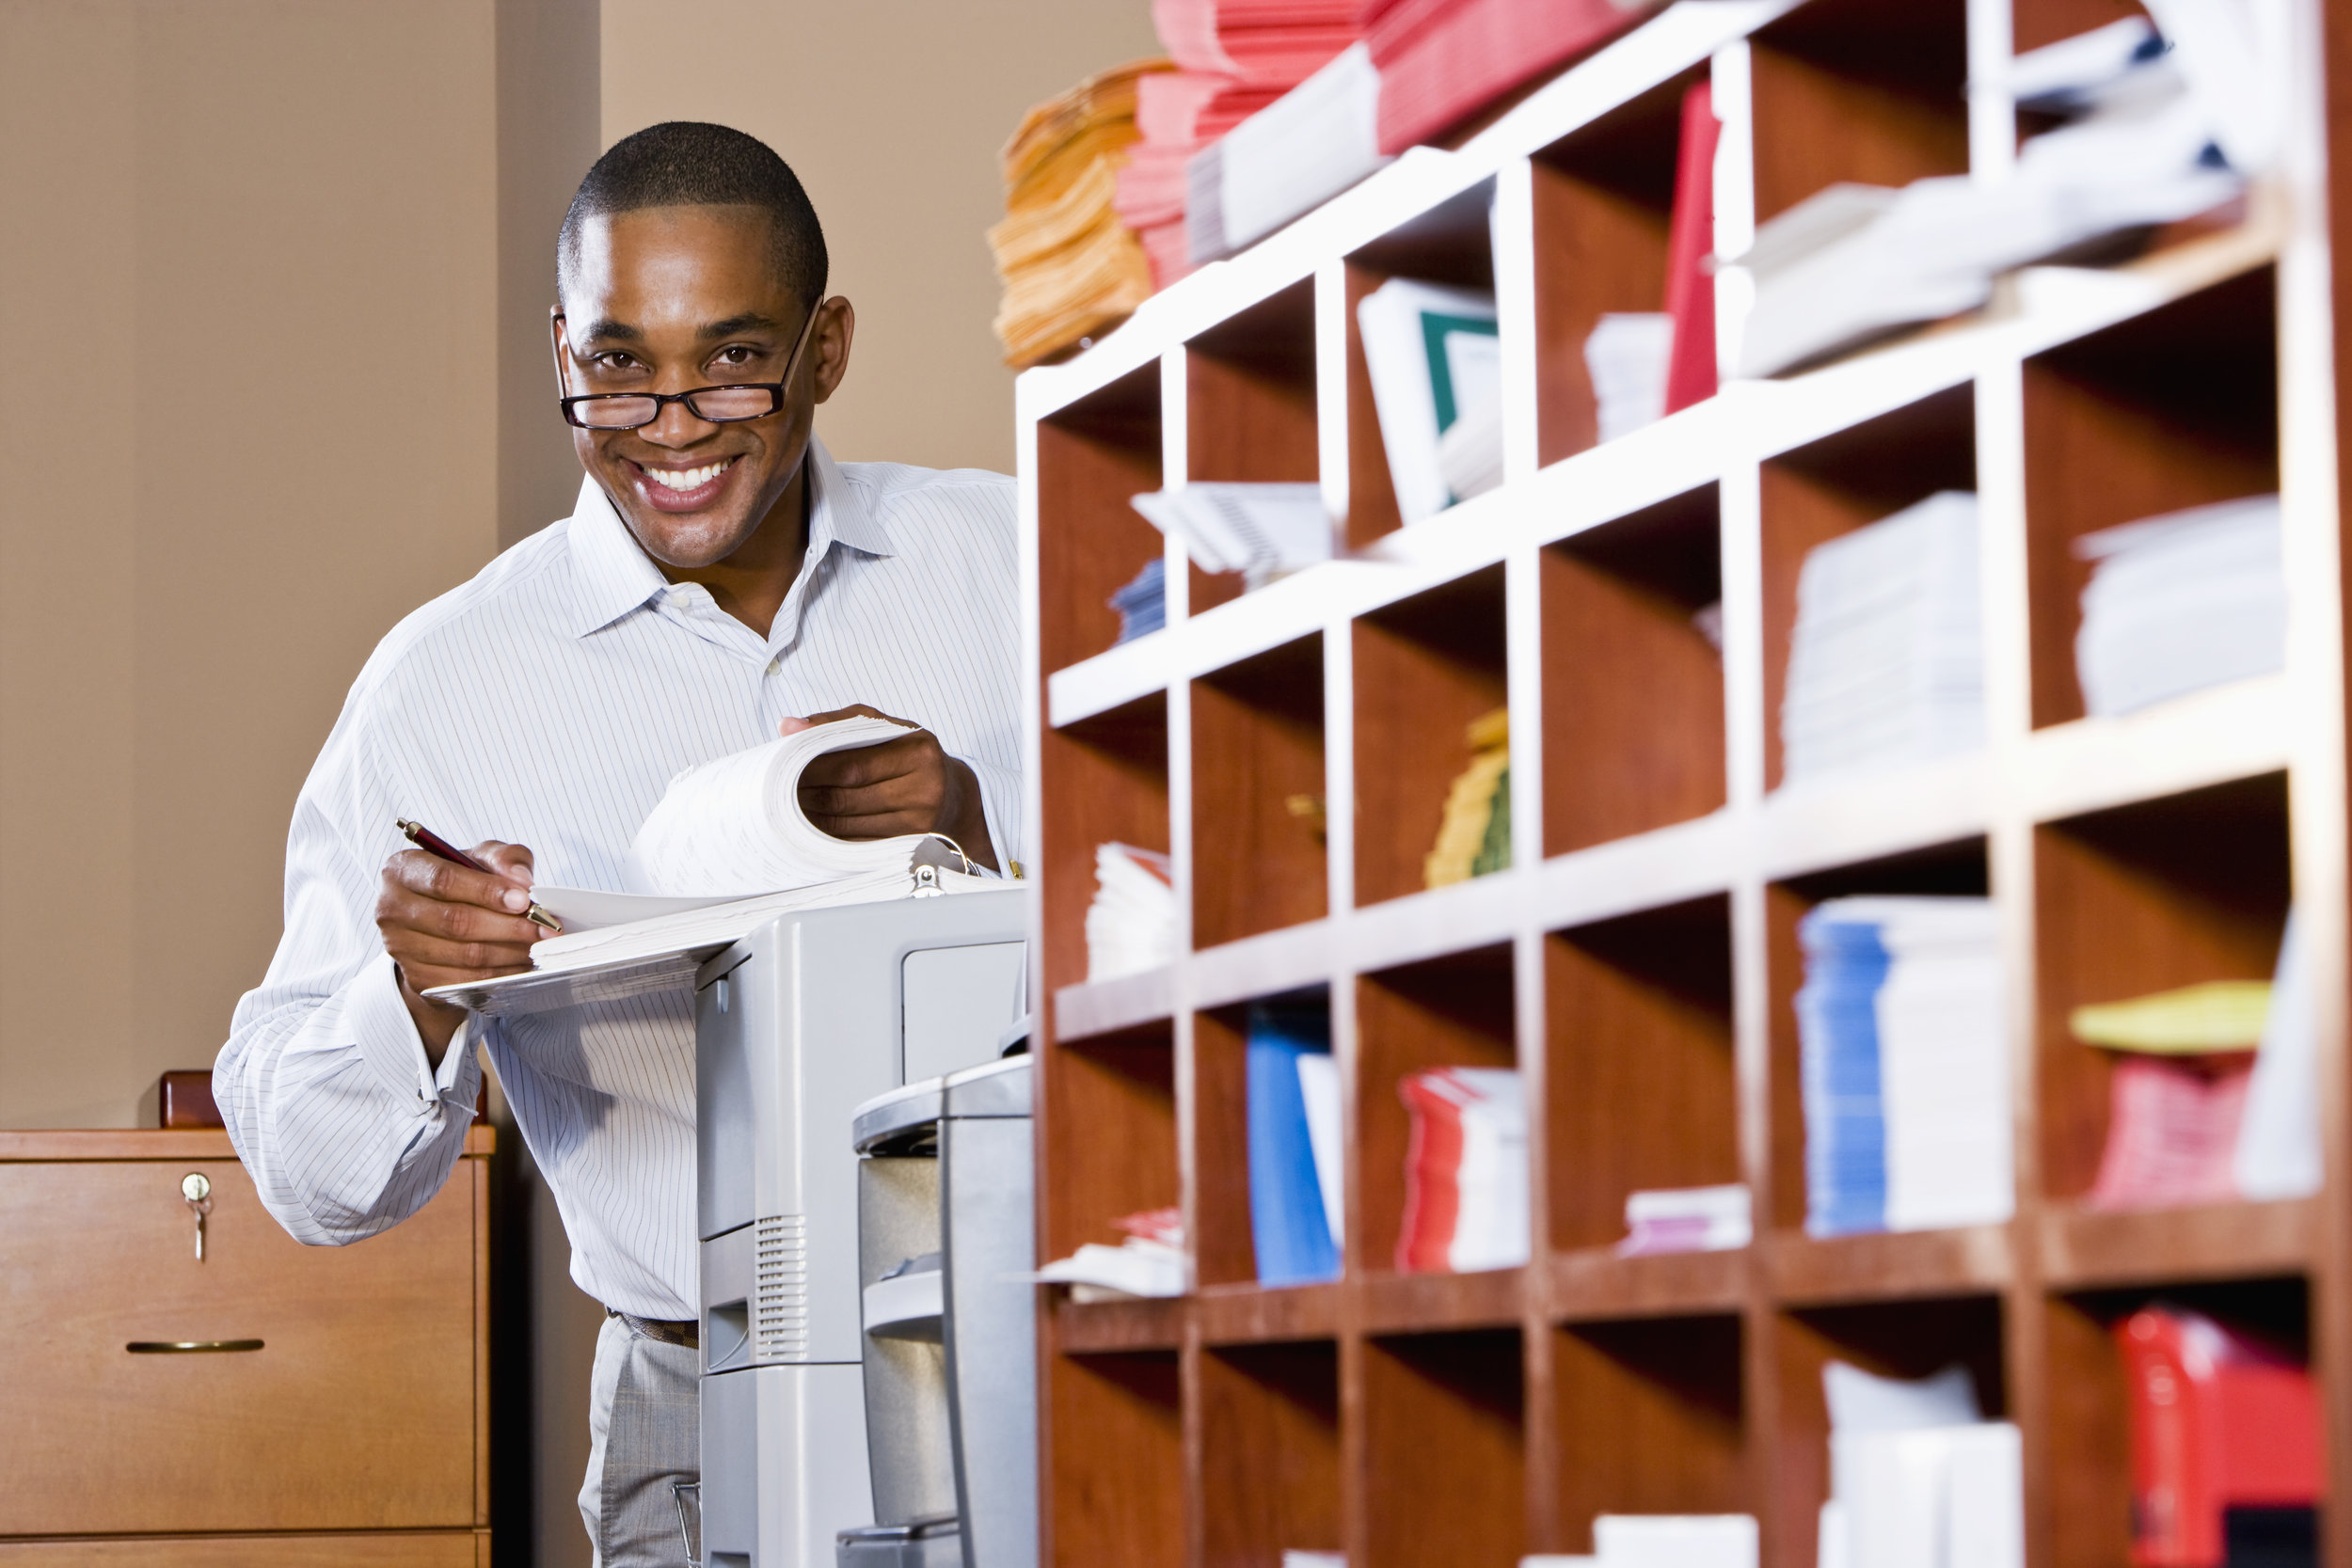 Mail Services - The most important documents within an organization are handled by the Mail Center. Mail and Shipping & Receiving services are at the core of The Millennium Group's Mail Management Services.